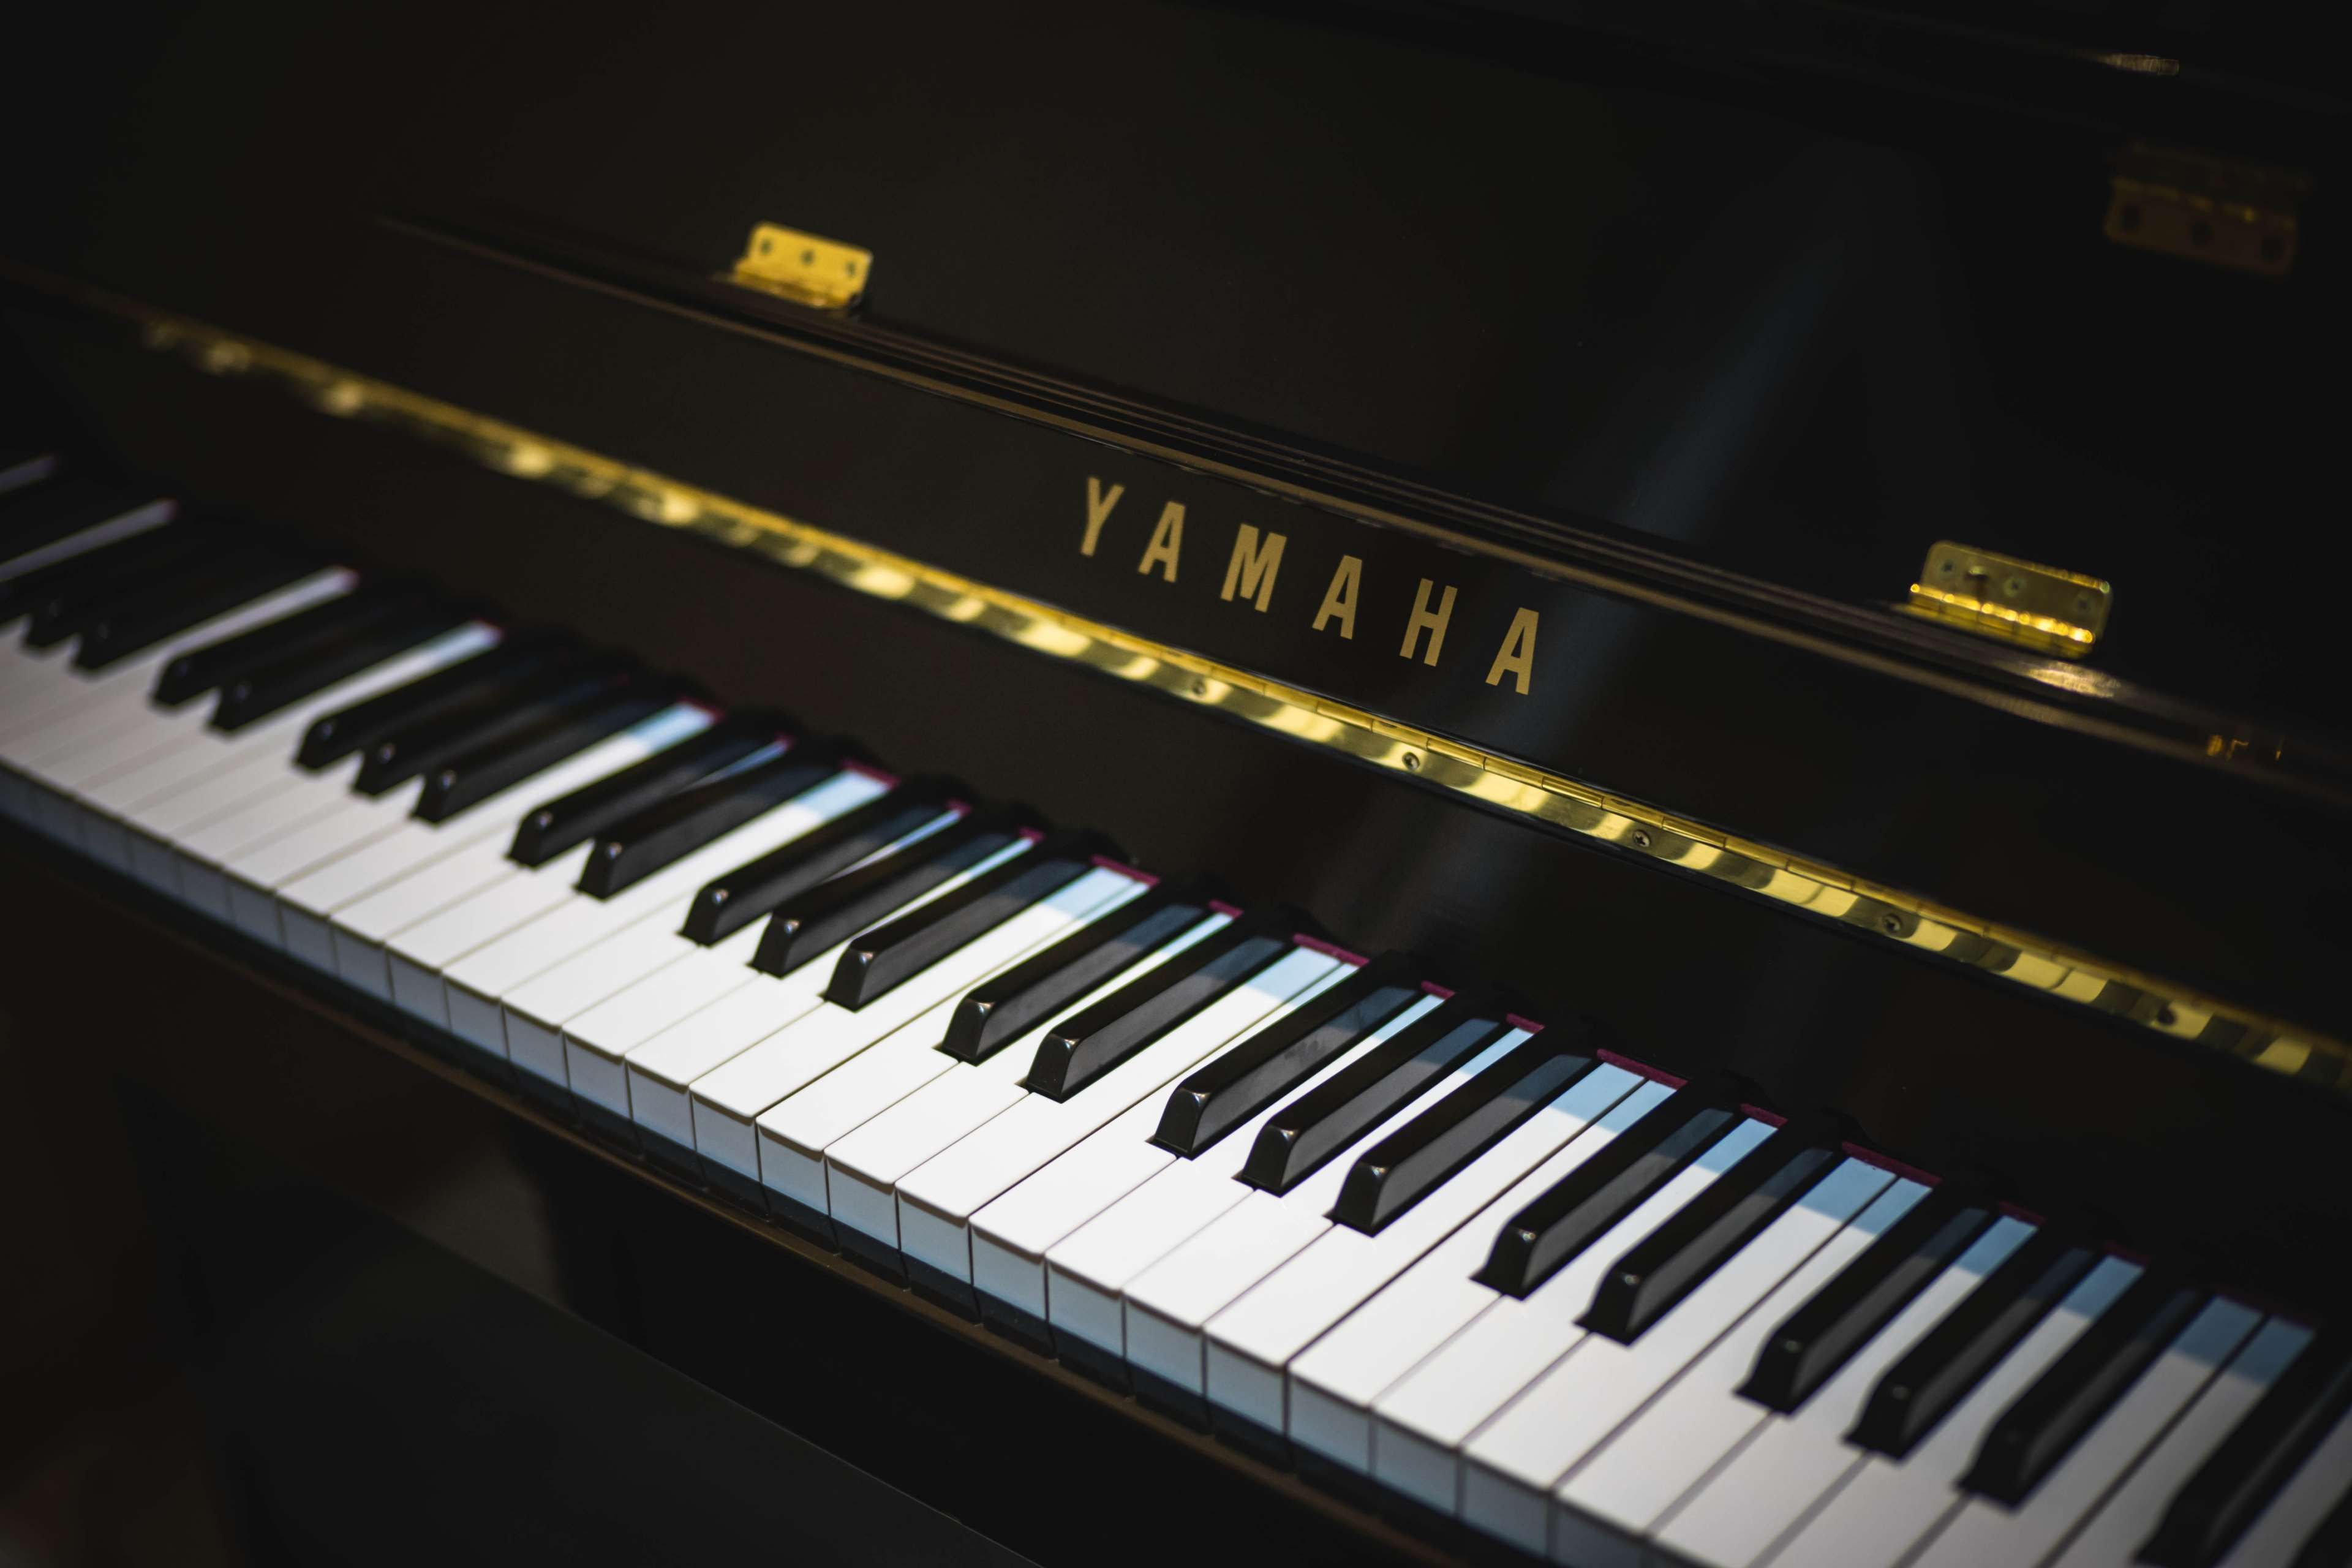 Acoustic Brand Brass Chord Ebony Instrument Ivory Keyboard Keys Music Musician Pianist Piano Rhythm Sound Synthes Piano Learn Piano Piano Music